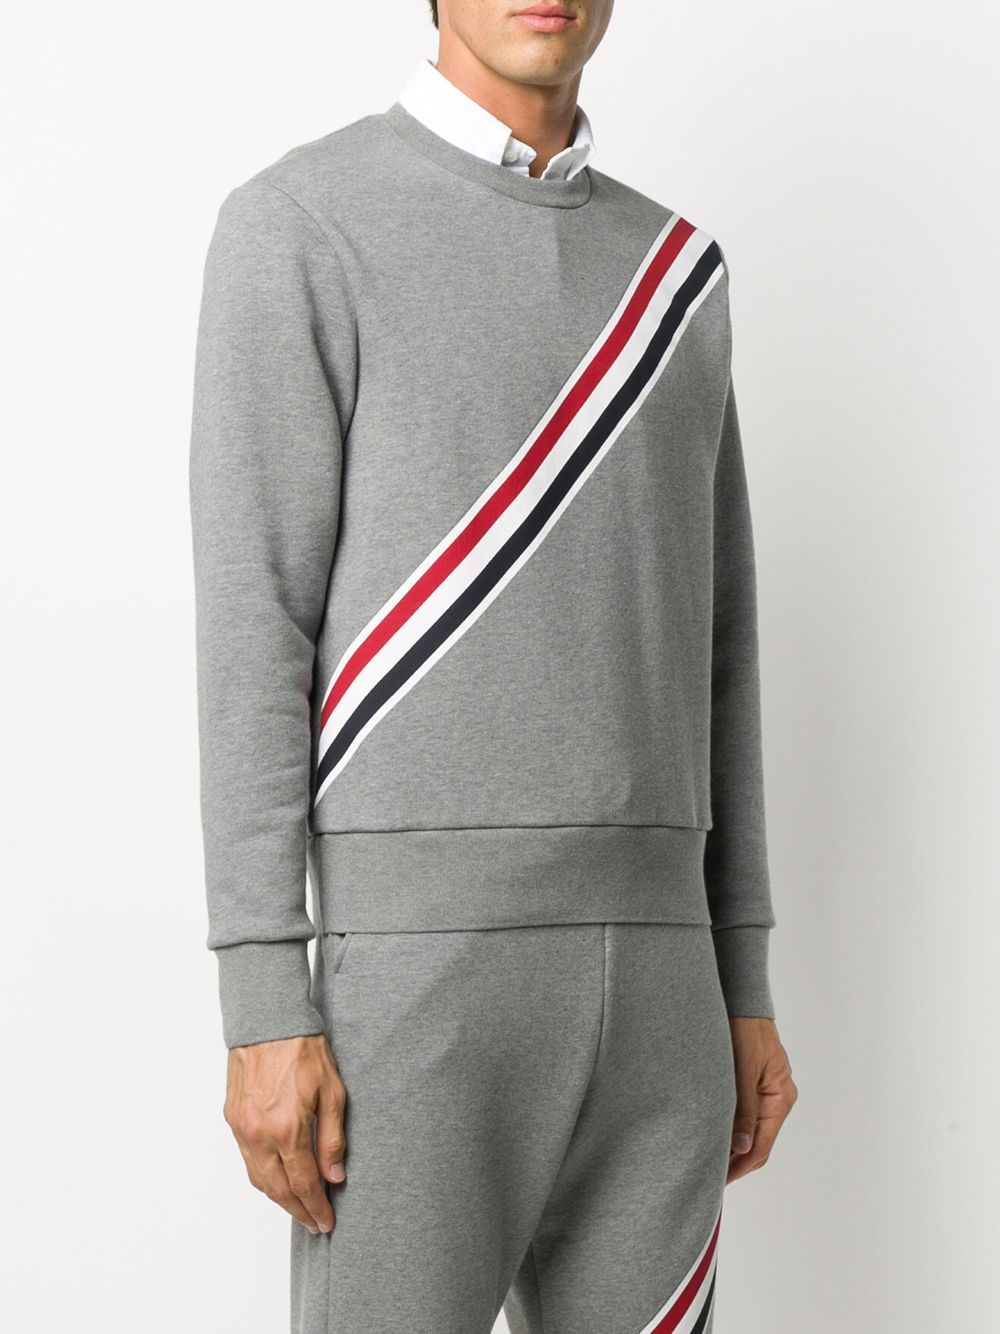 THOM BROWNE RELAXED FIT CREW NECK SWEATSHIRT W/ PRINTED RWB DIAGONAL STRIPE IN CLASSIC LOOPBACK